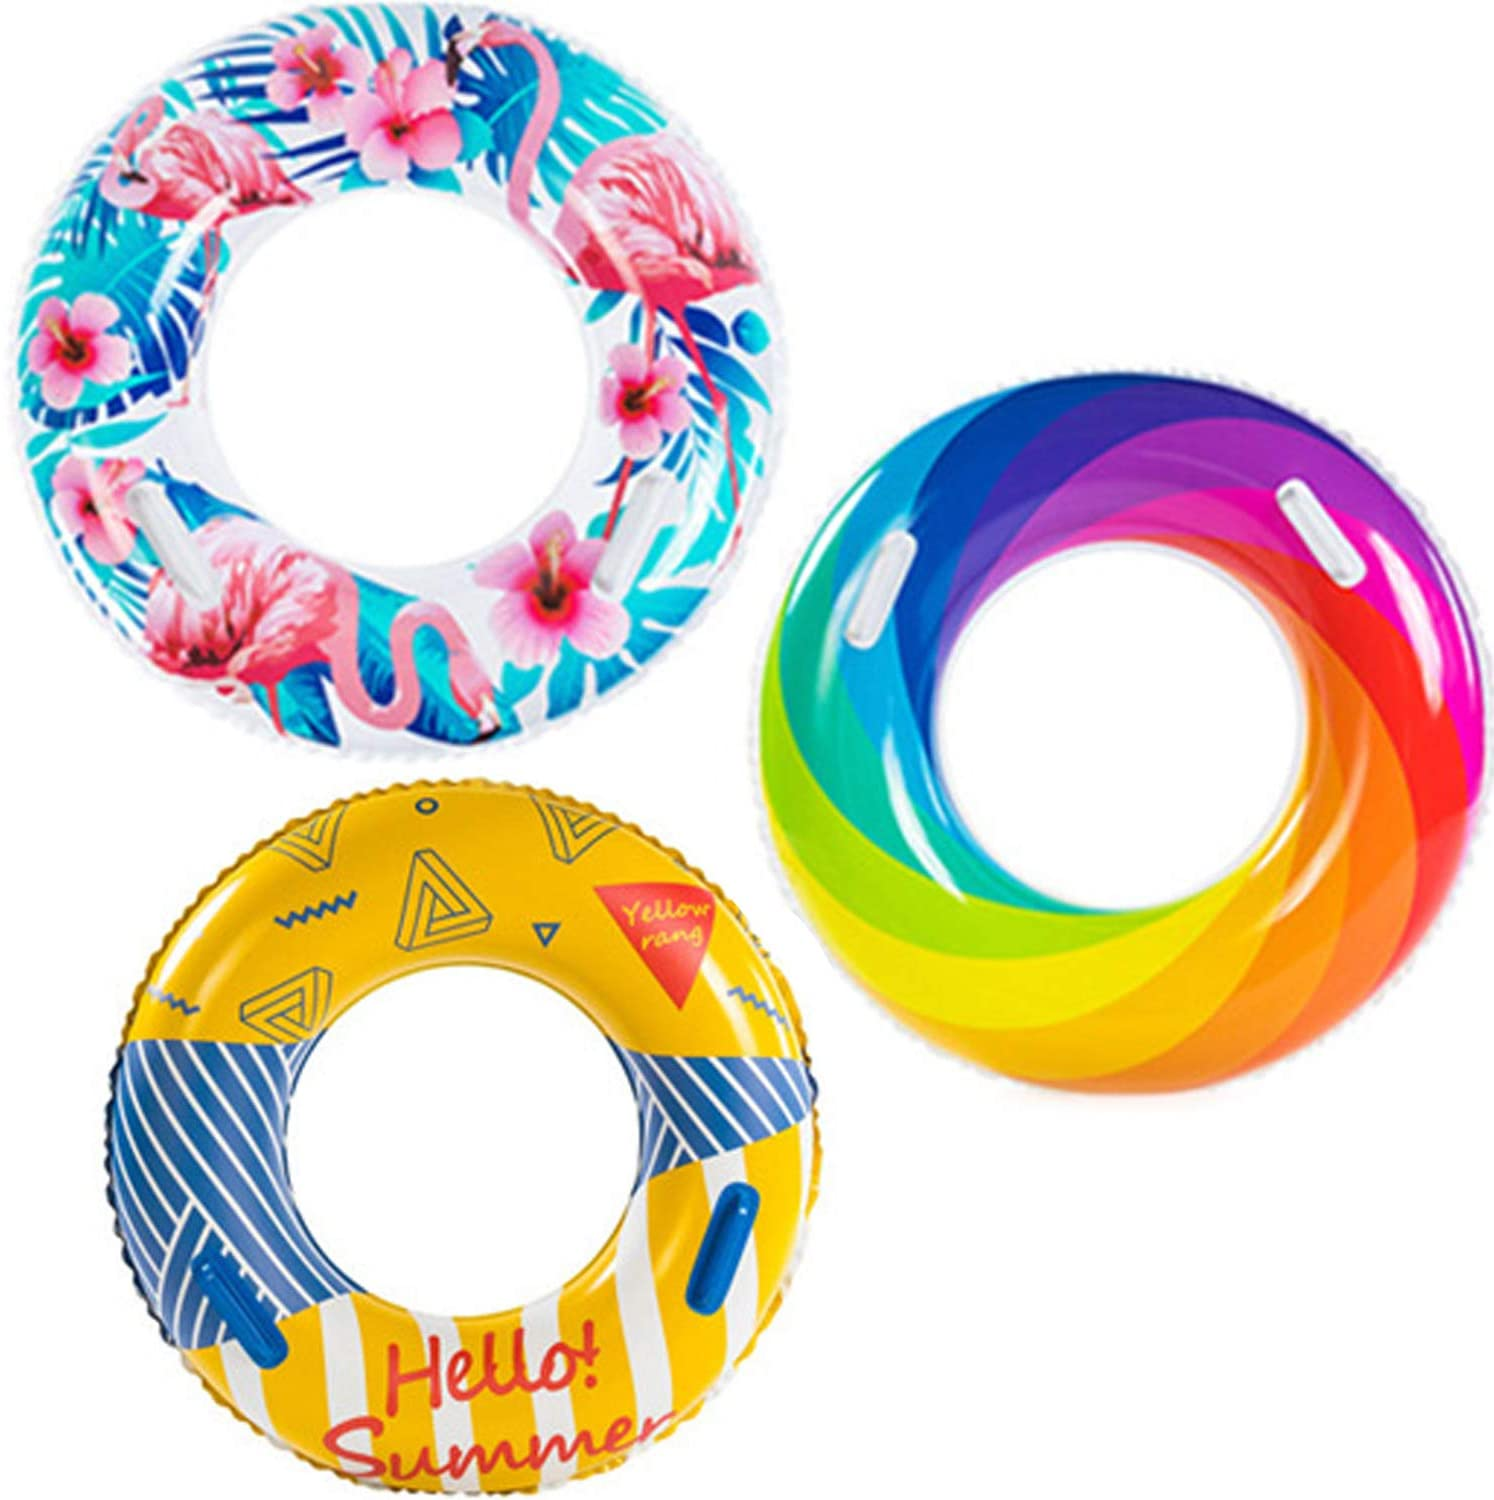 Kribin 2020 Upgraded Inflatable Pool Floats with Handle Design - 3 Pack Swim Tube Ring Toys for Kids Adults Toddlers Swimming Pool Outdoor Beach Party